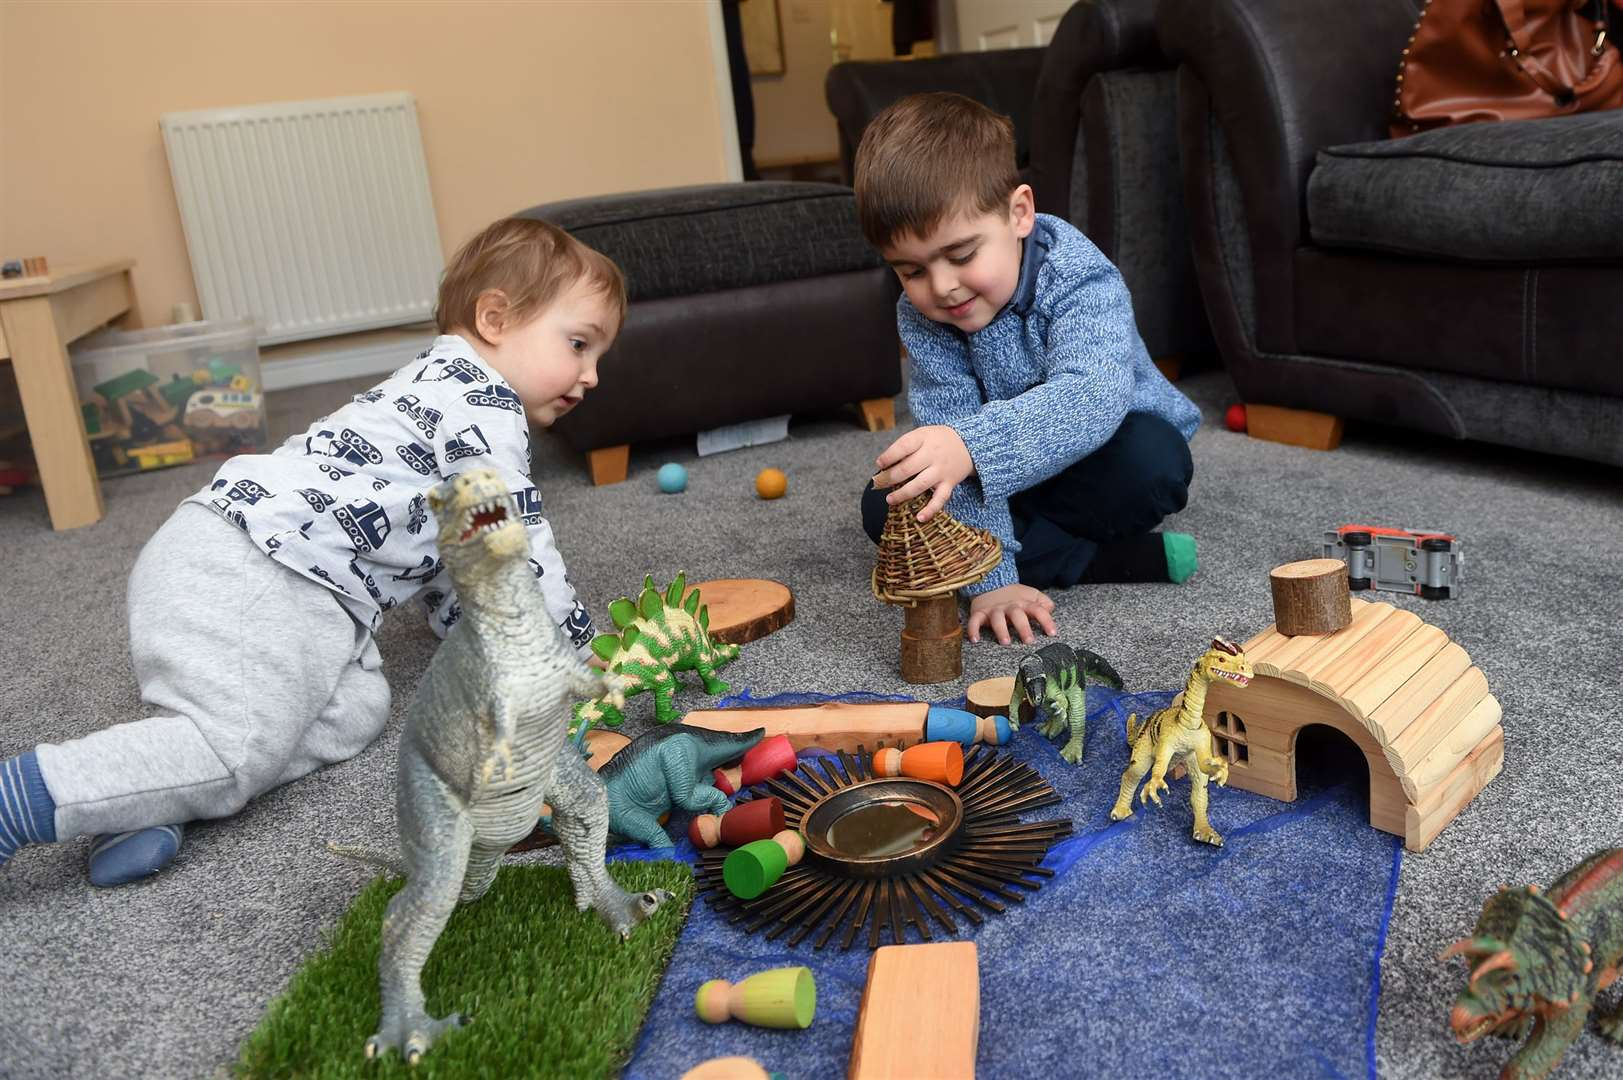 FEATURE - Claire Wilson is Suffolk's first 'Curiosity Approach' childminder, using no plastic or electronic devices.....PICTURE: Mecha Morton .... (30601604)